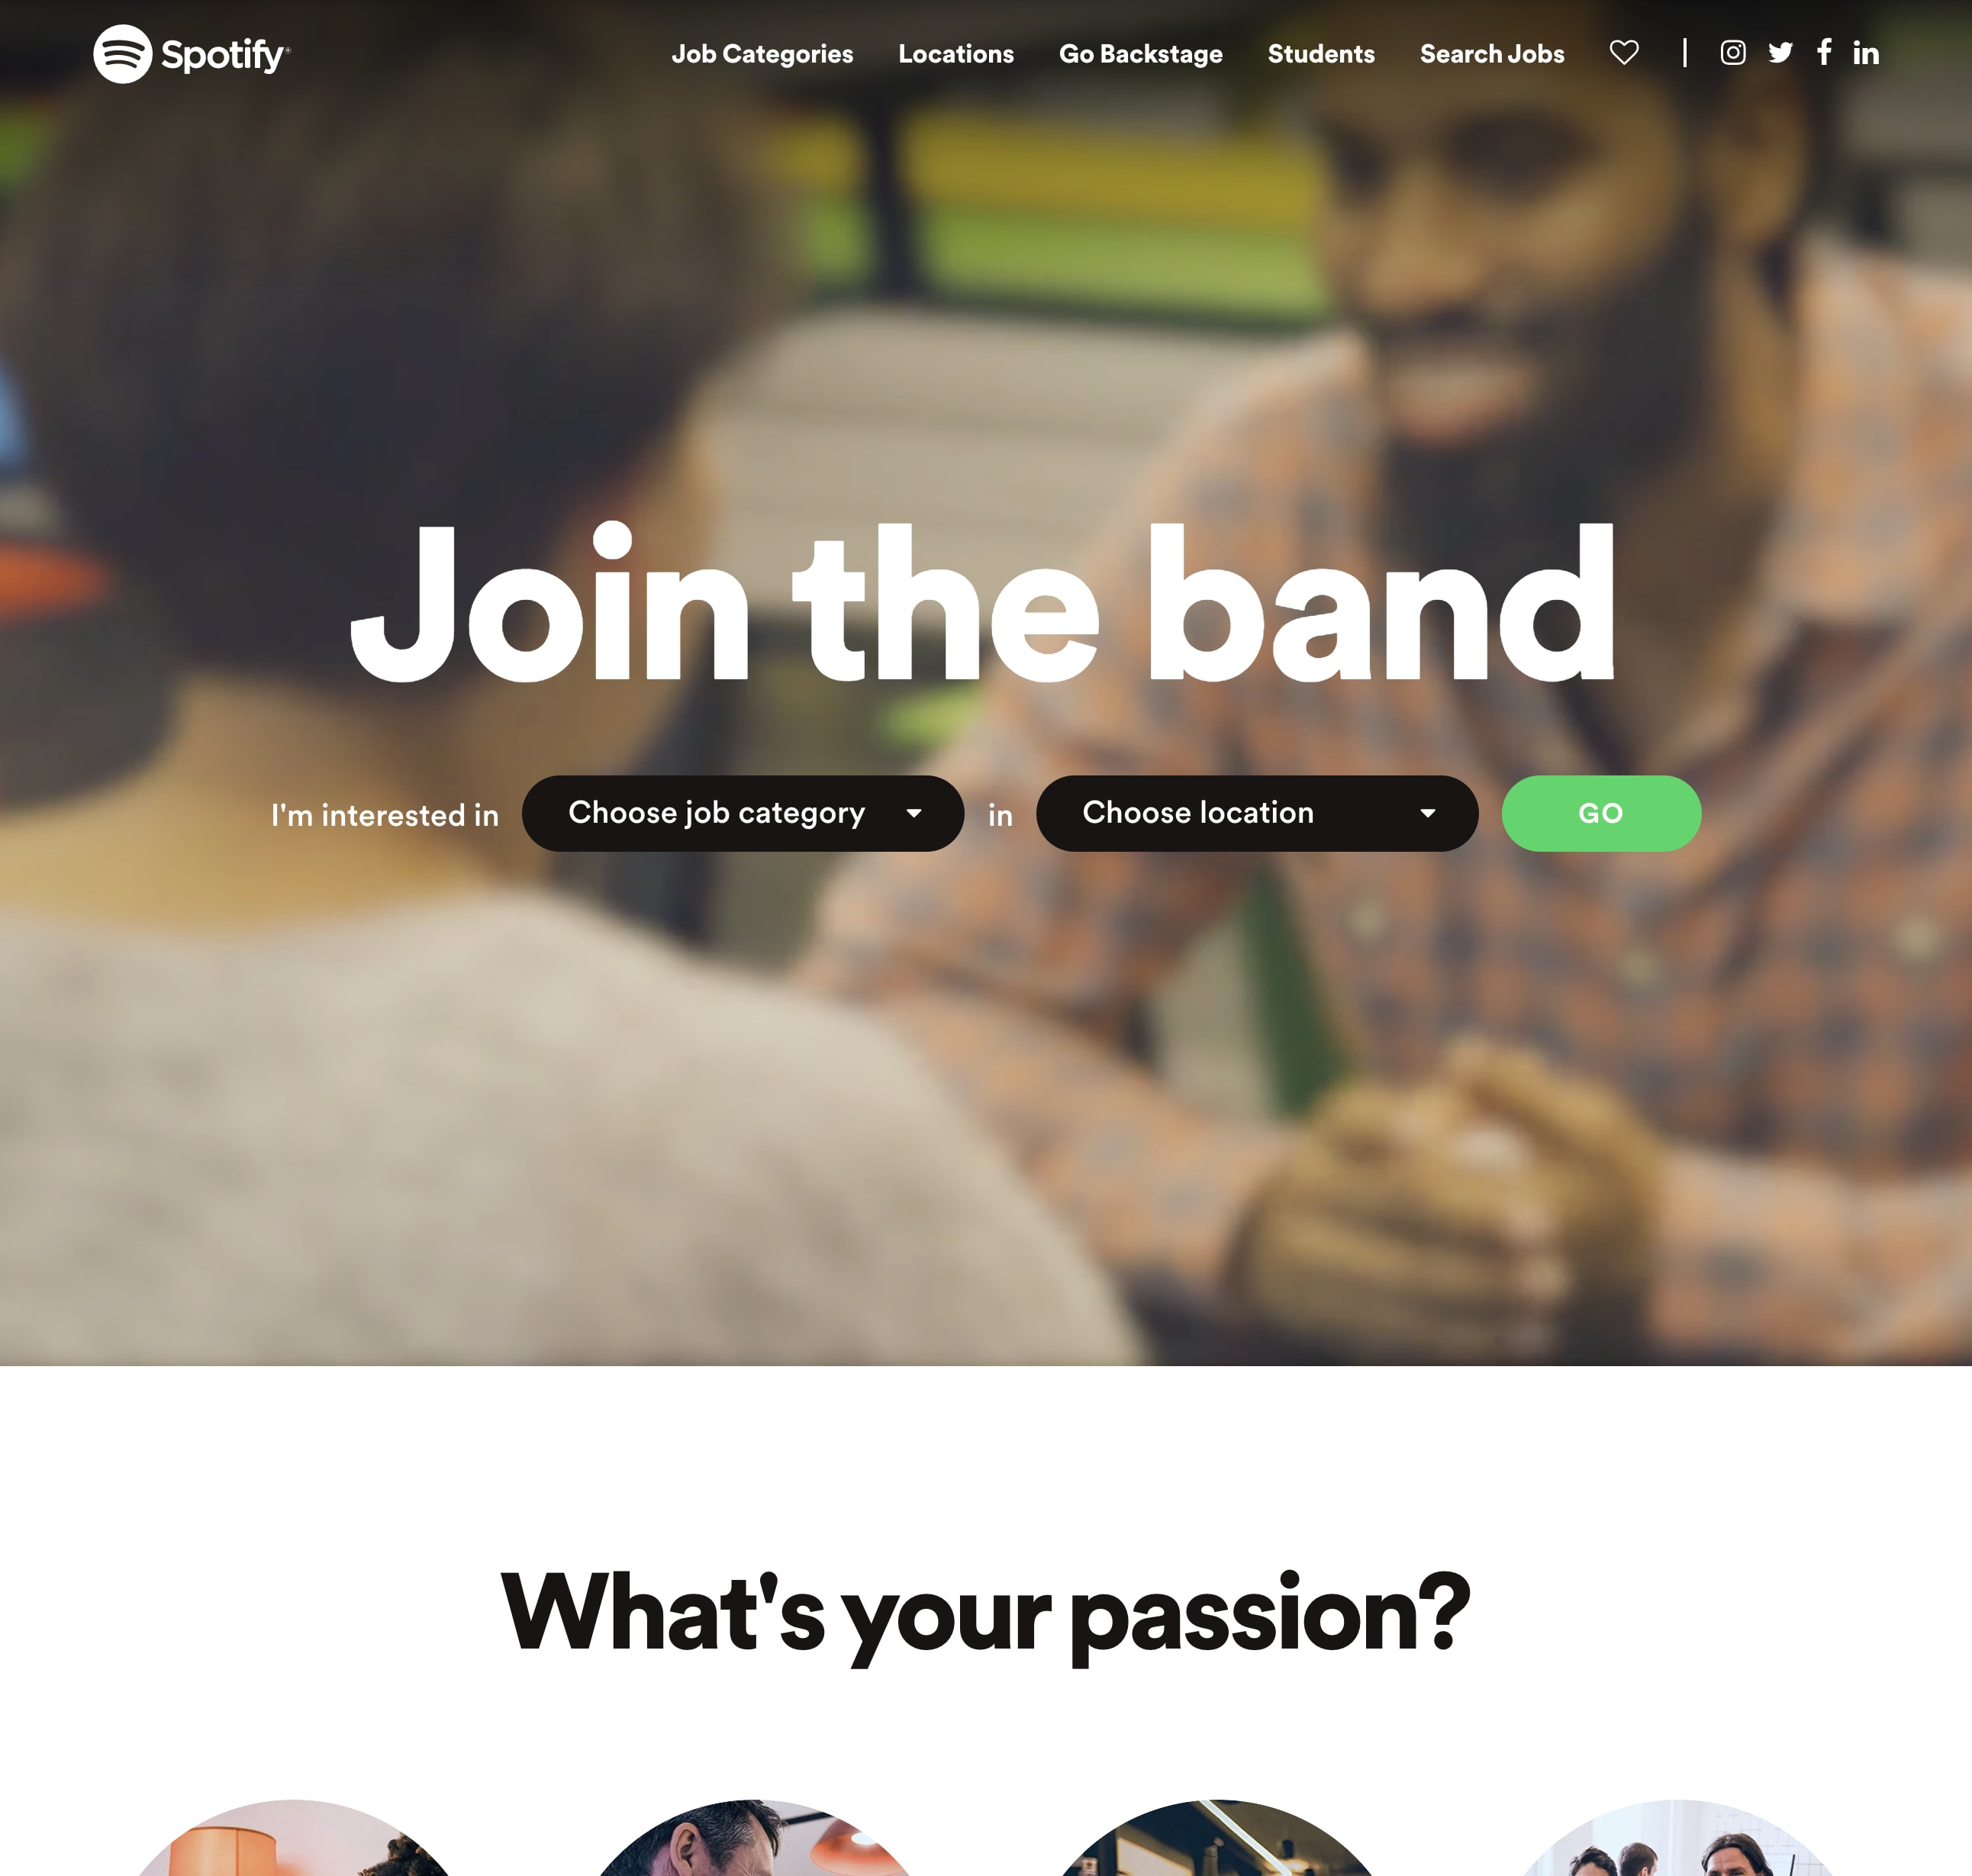 Spotify Career Page Example